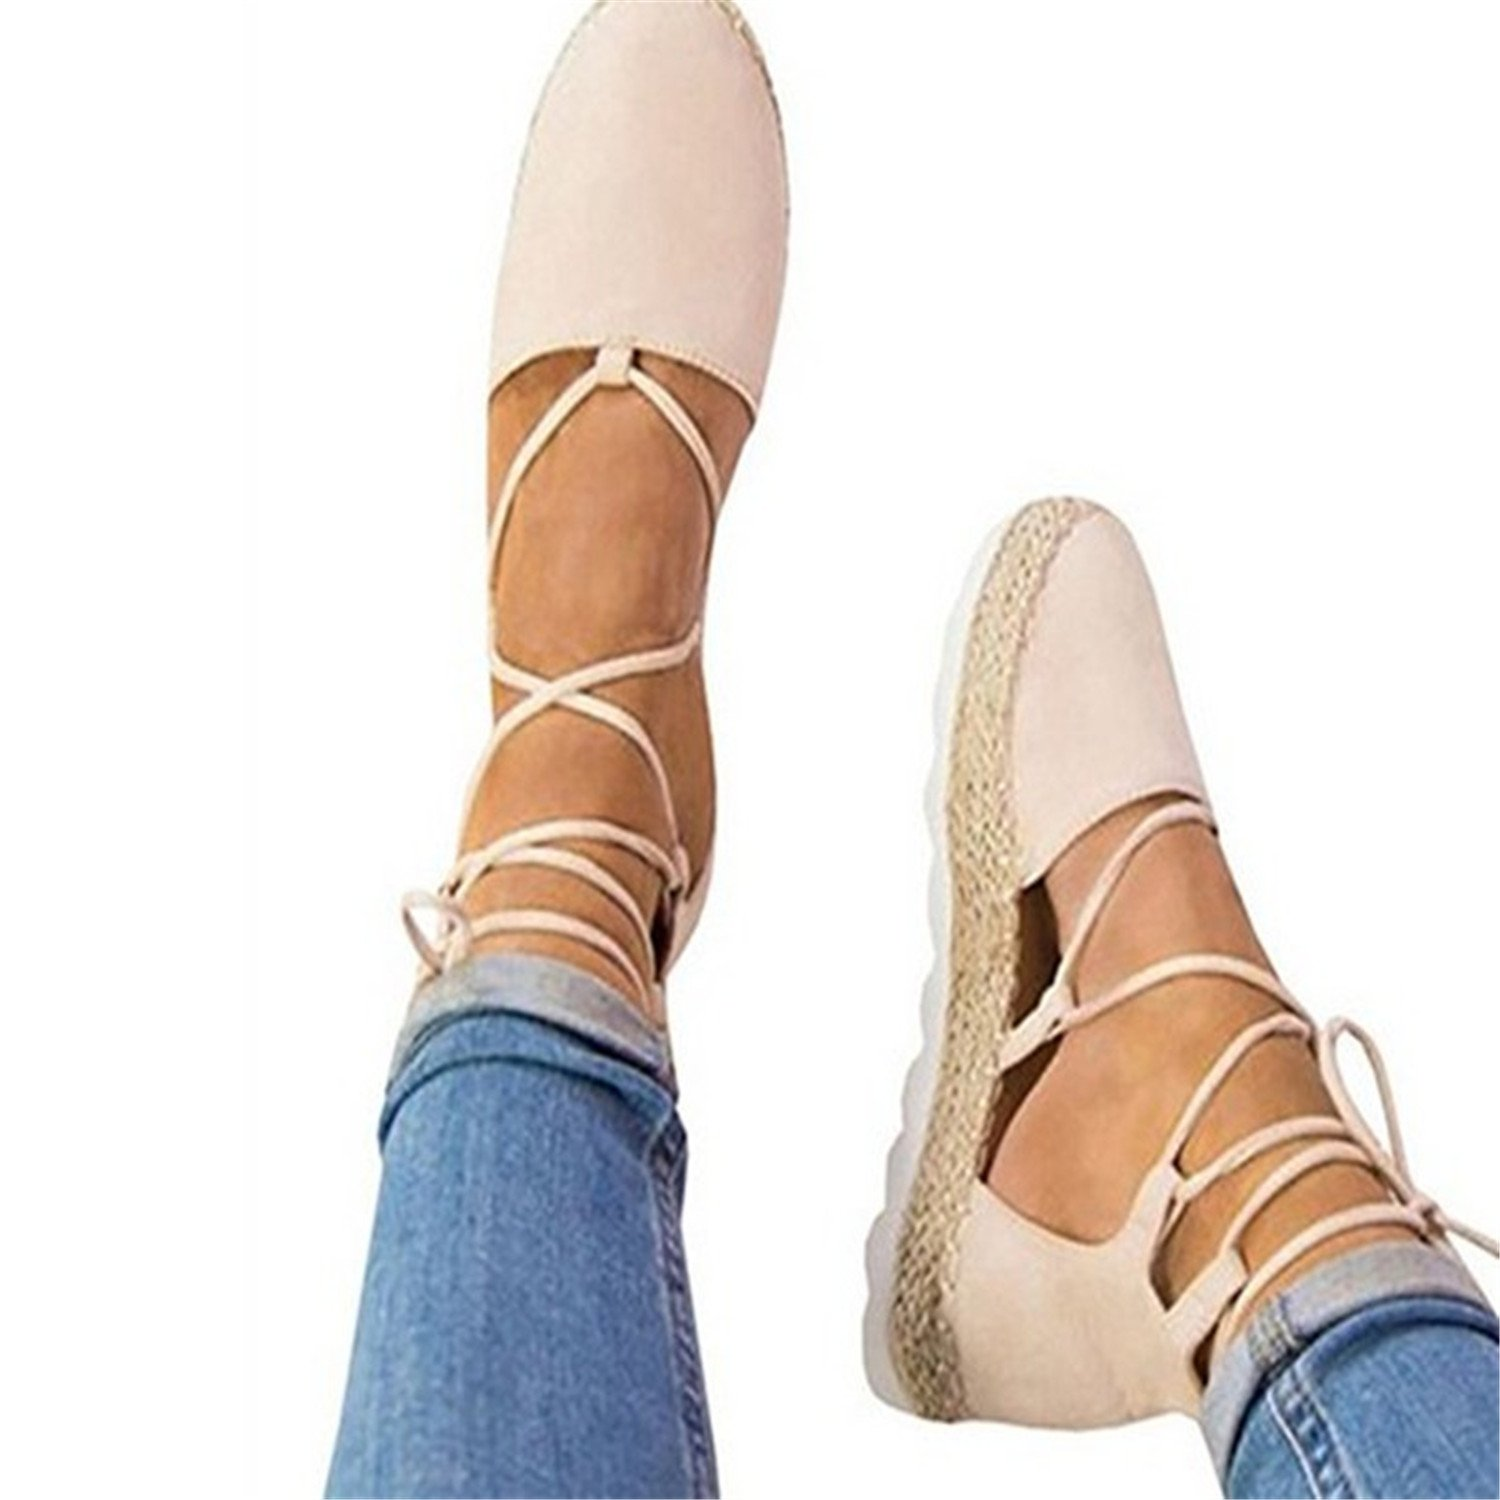 New Women Summer Cross-Tied Flat Sandals Flat Shoes Fashion Casual Cold Fish Mouth Shoes Bandage Hemp Sandals 35-44 B07CVB2PXG 10.5 B(M) US Pink